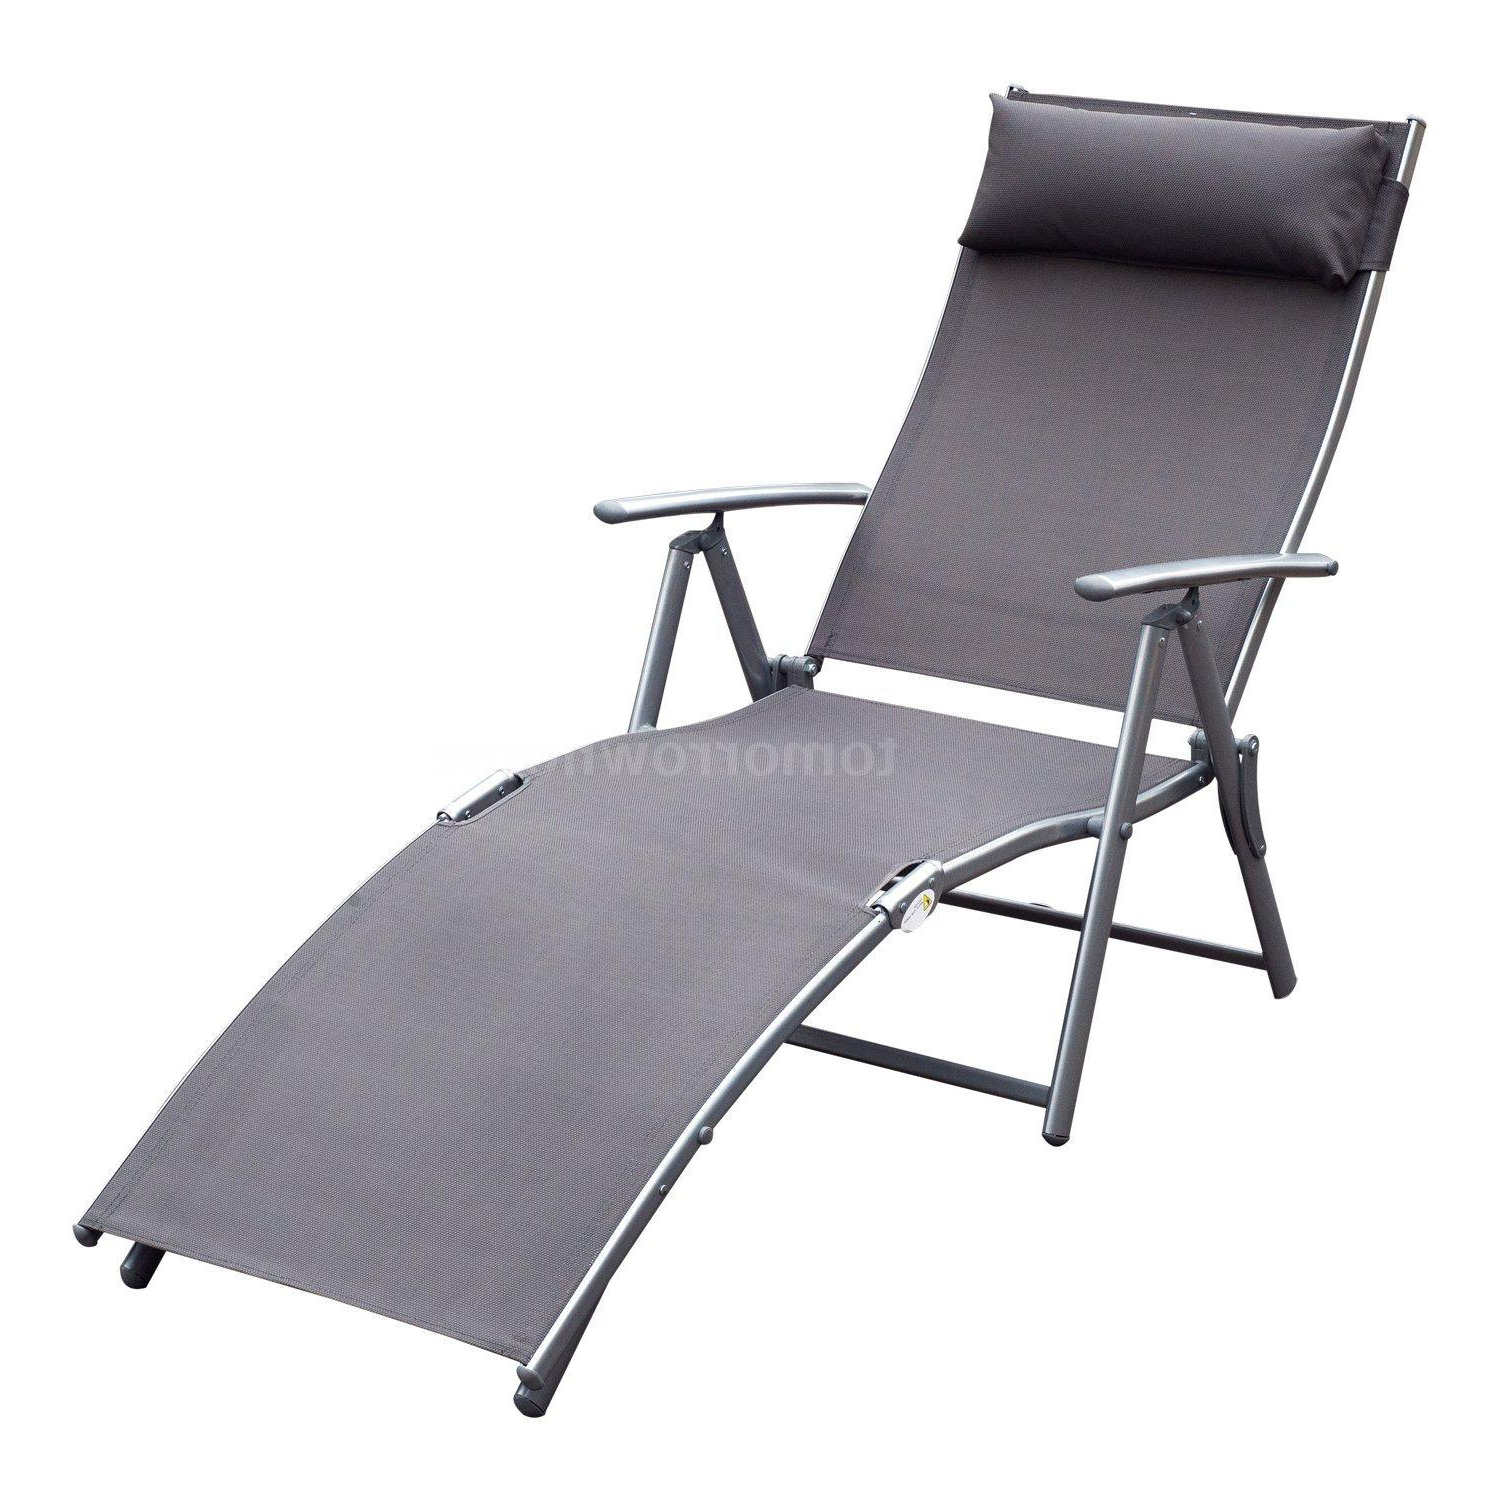 Latest Steel Sling Fabric Outdoor Folding Chaise Lounges Inside Details About Steel Sling Fabric Outdoor Folding Chaise Lounge Chair  Recliner – Grey K5C (View 8 of 25)